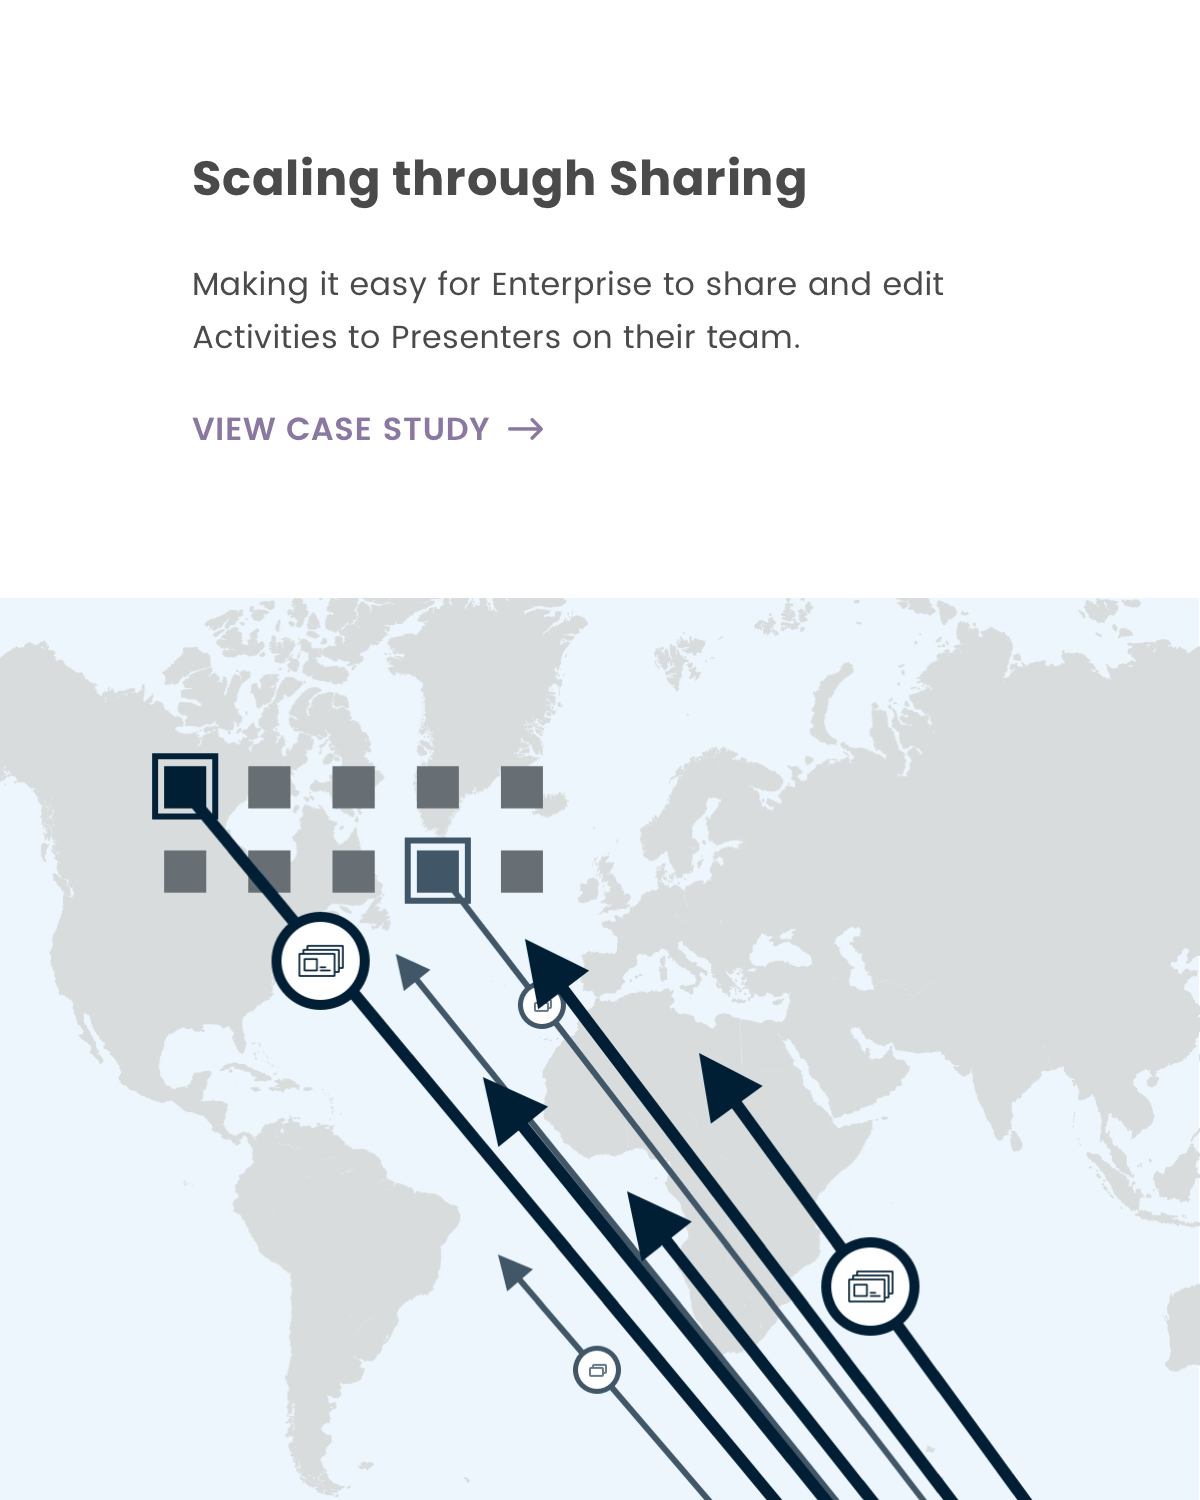 Scaling through Sharing